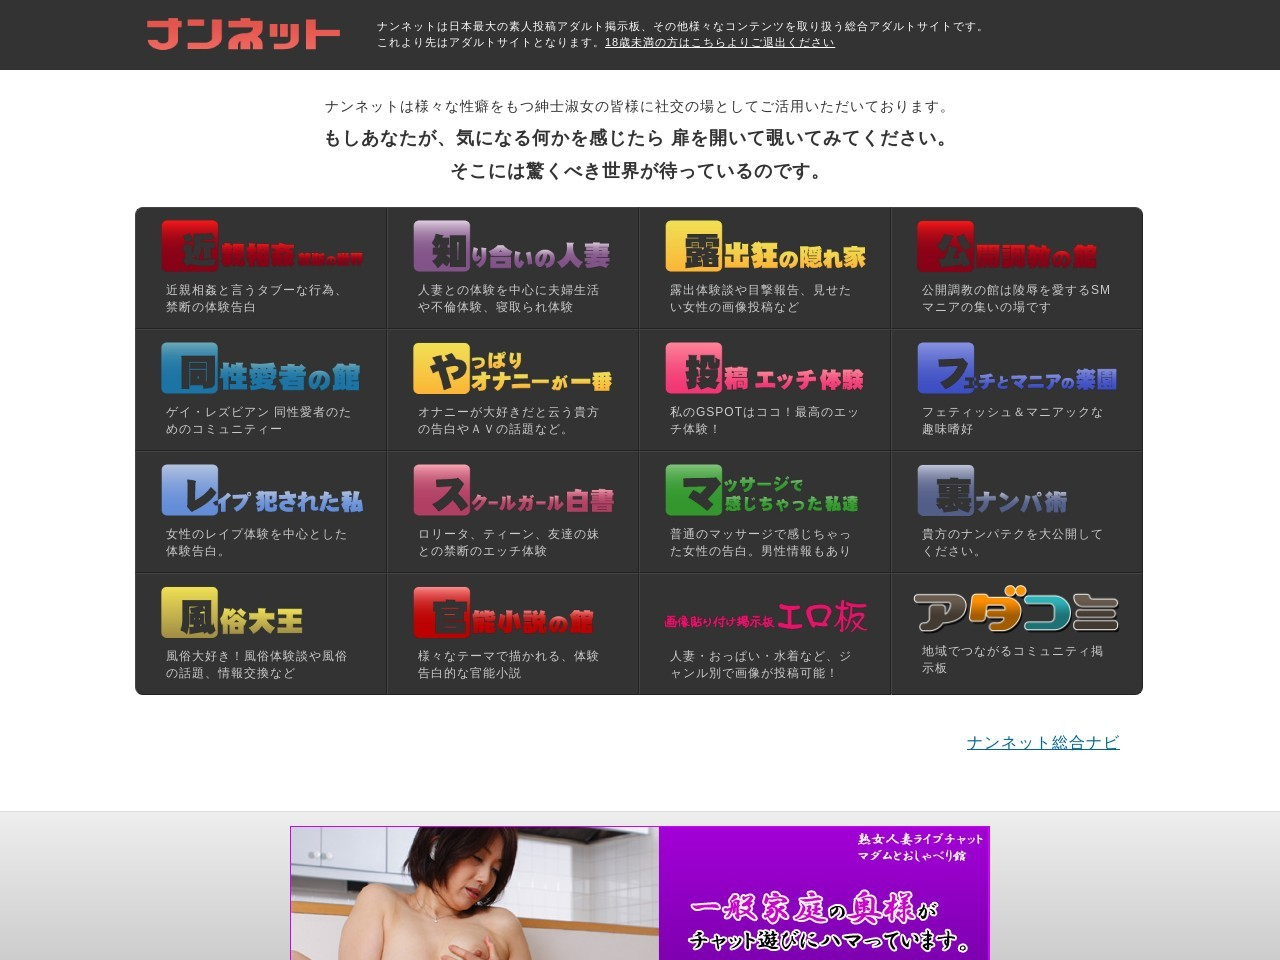 XXX Game, Porn Game, Hentai Game, Nude Game, Anime Game and Erotic Game download and play online.